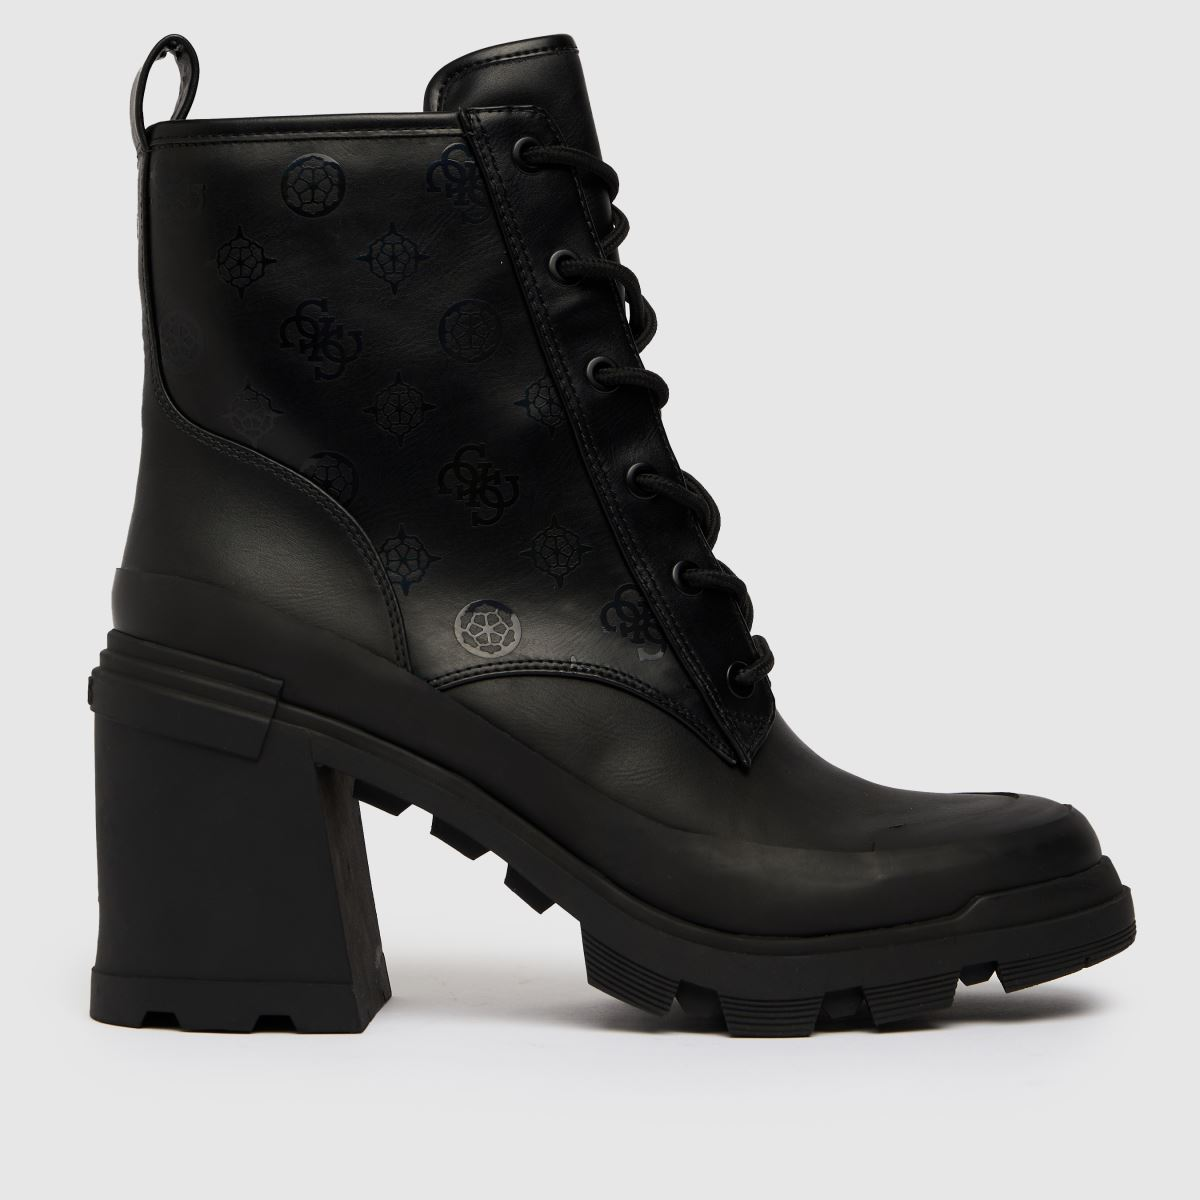 GUESS Black Renca Boots